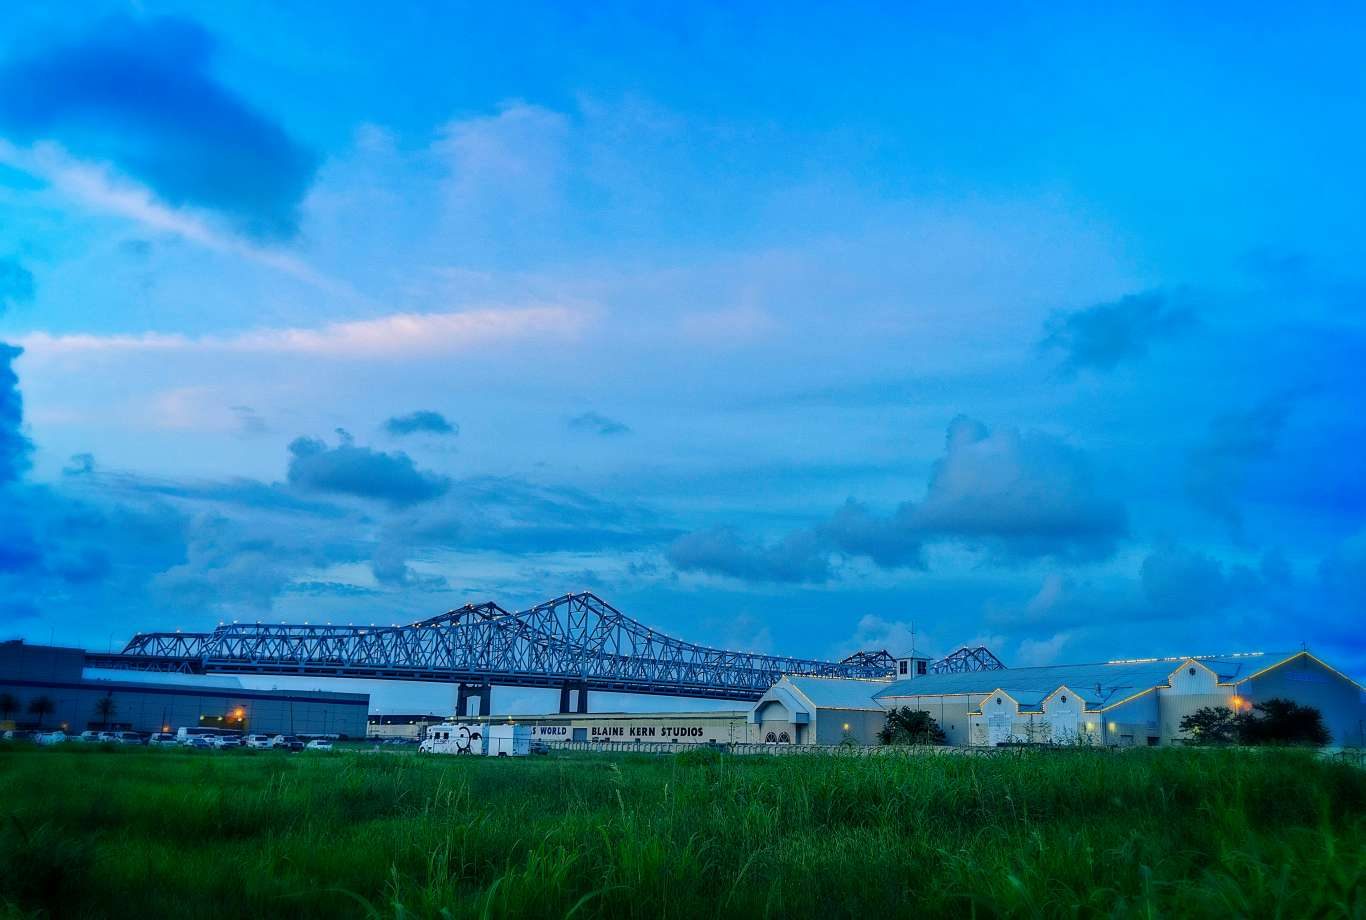 The Crescent City Connection and Mardi Gras World at dusk in New Orleans.